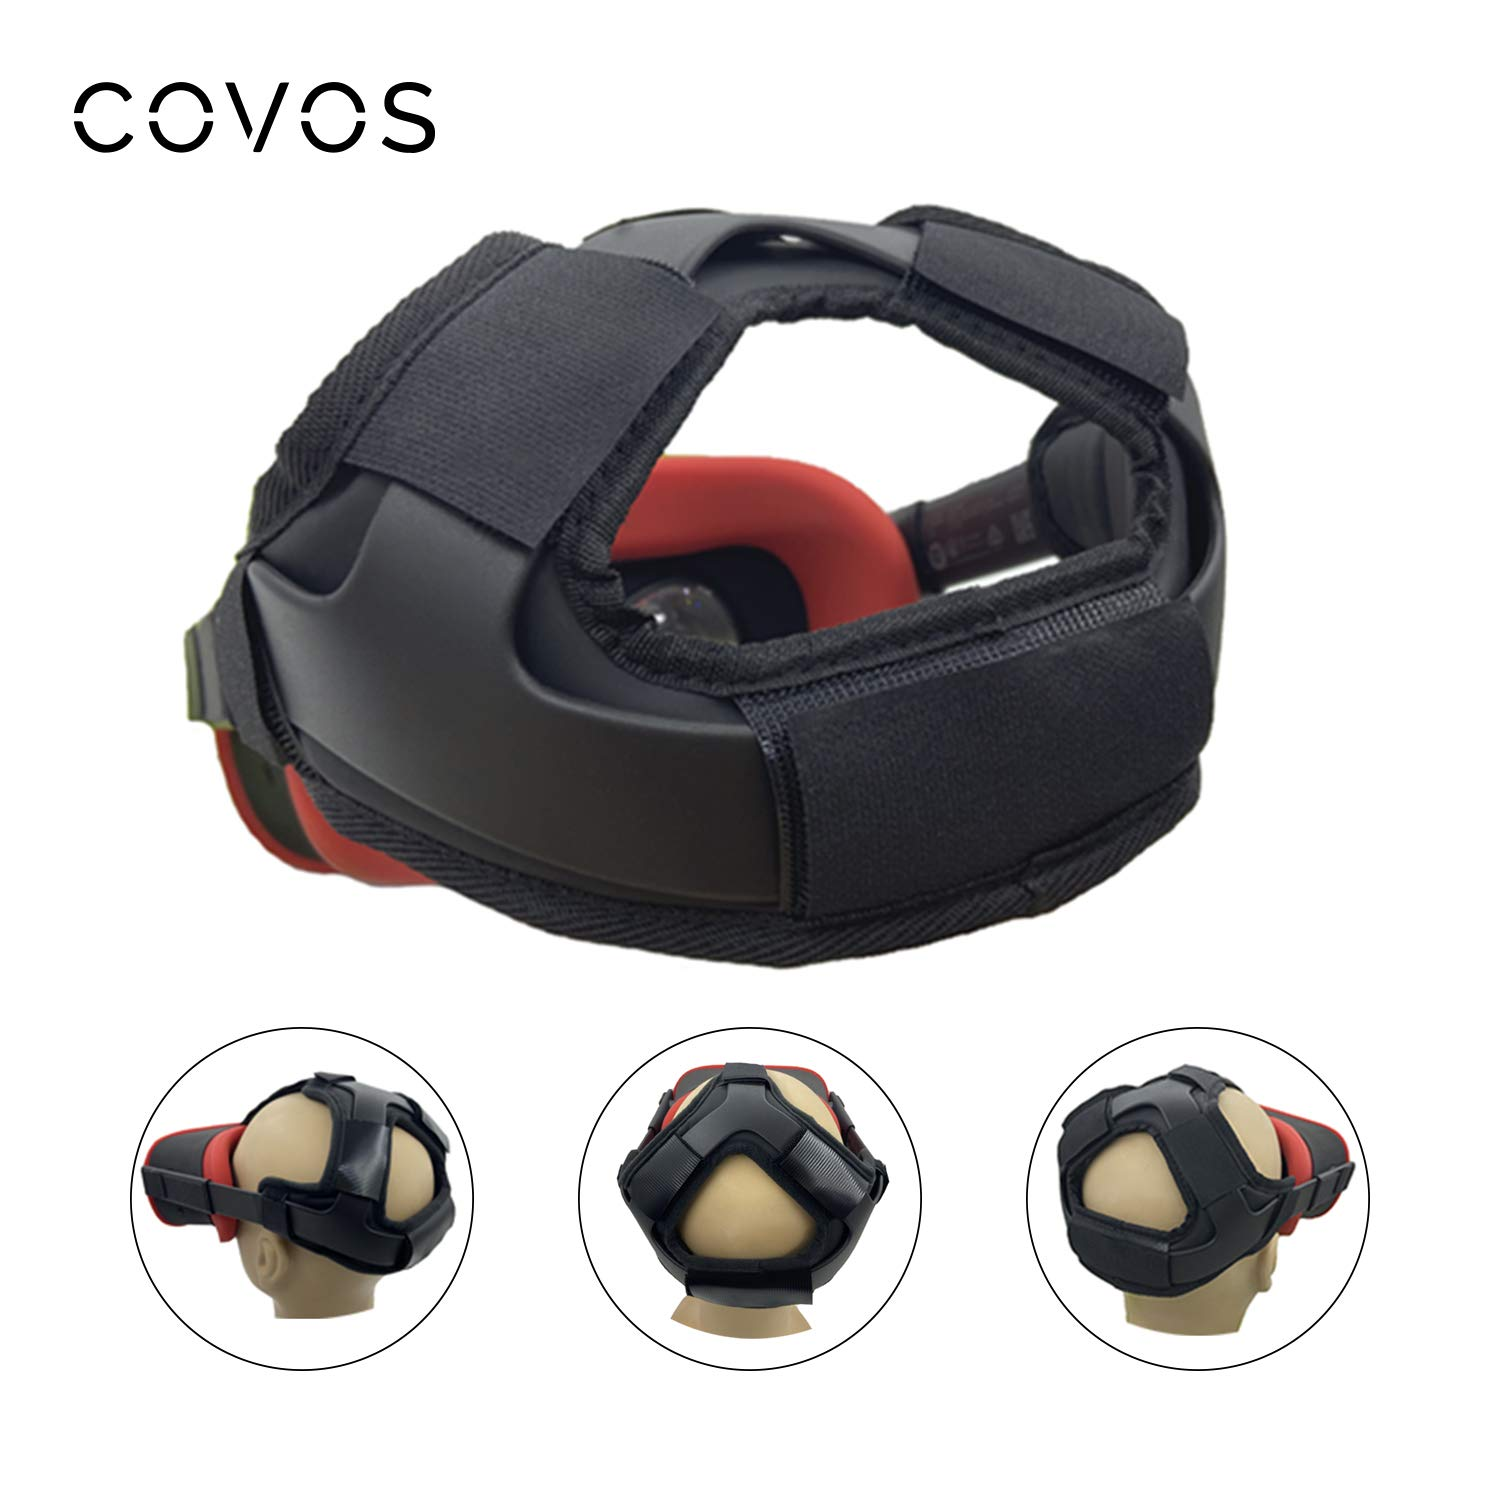 Covos VR Headset Head Strap Foam Pad for Oculus Quest, Oculus Quest Headset Accessories Replacement Headband Strap Pad…